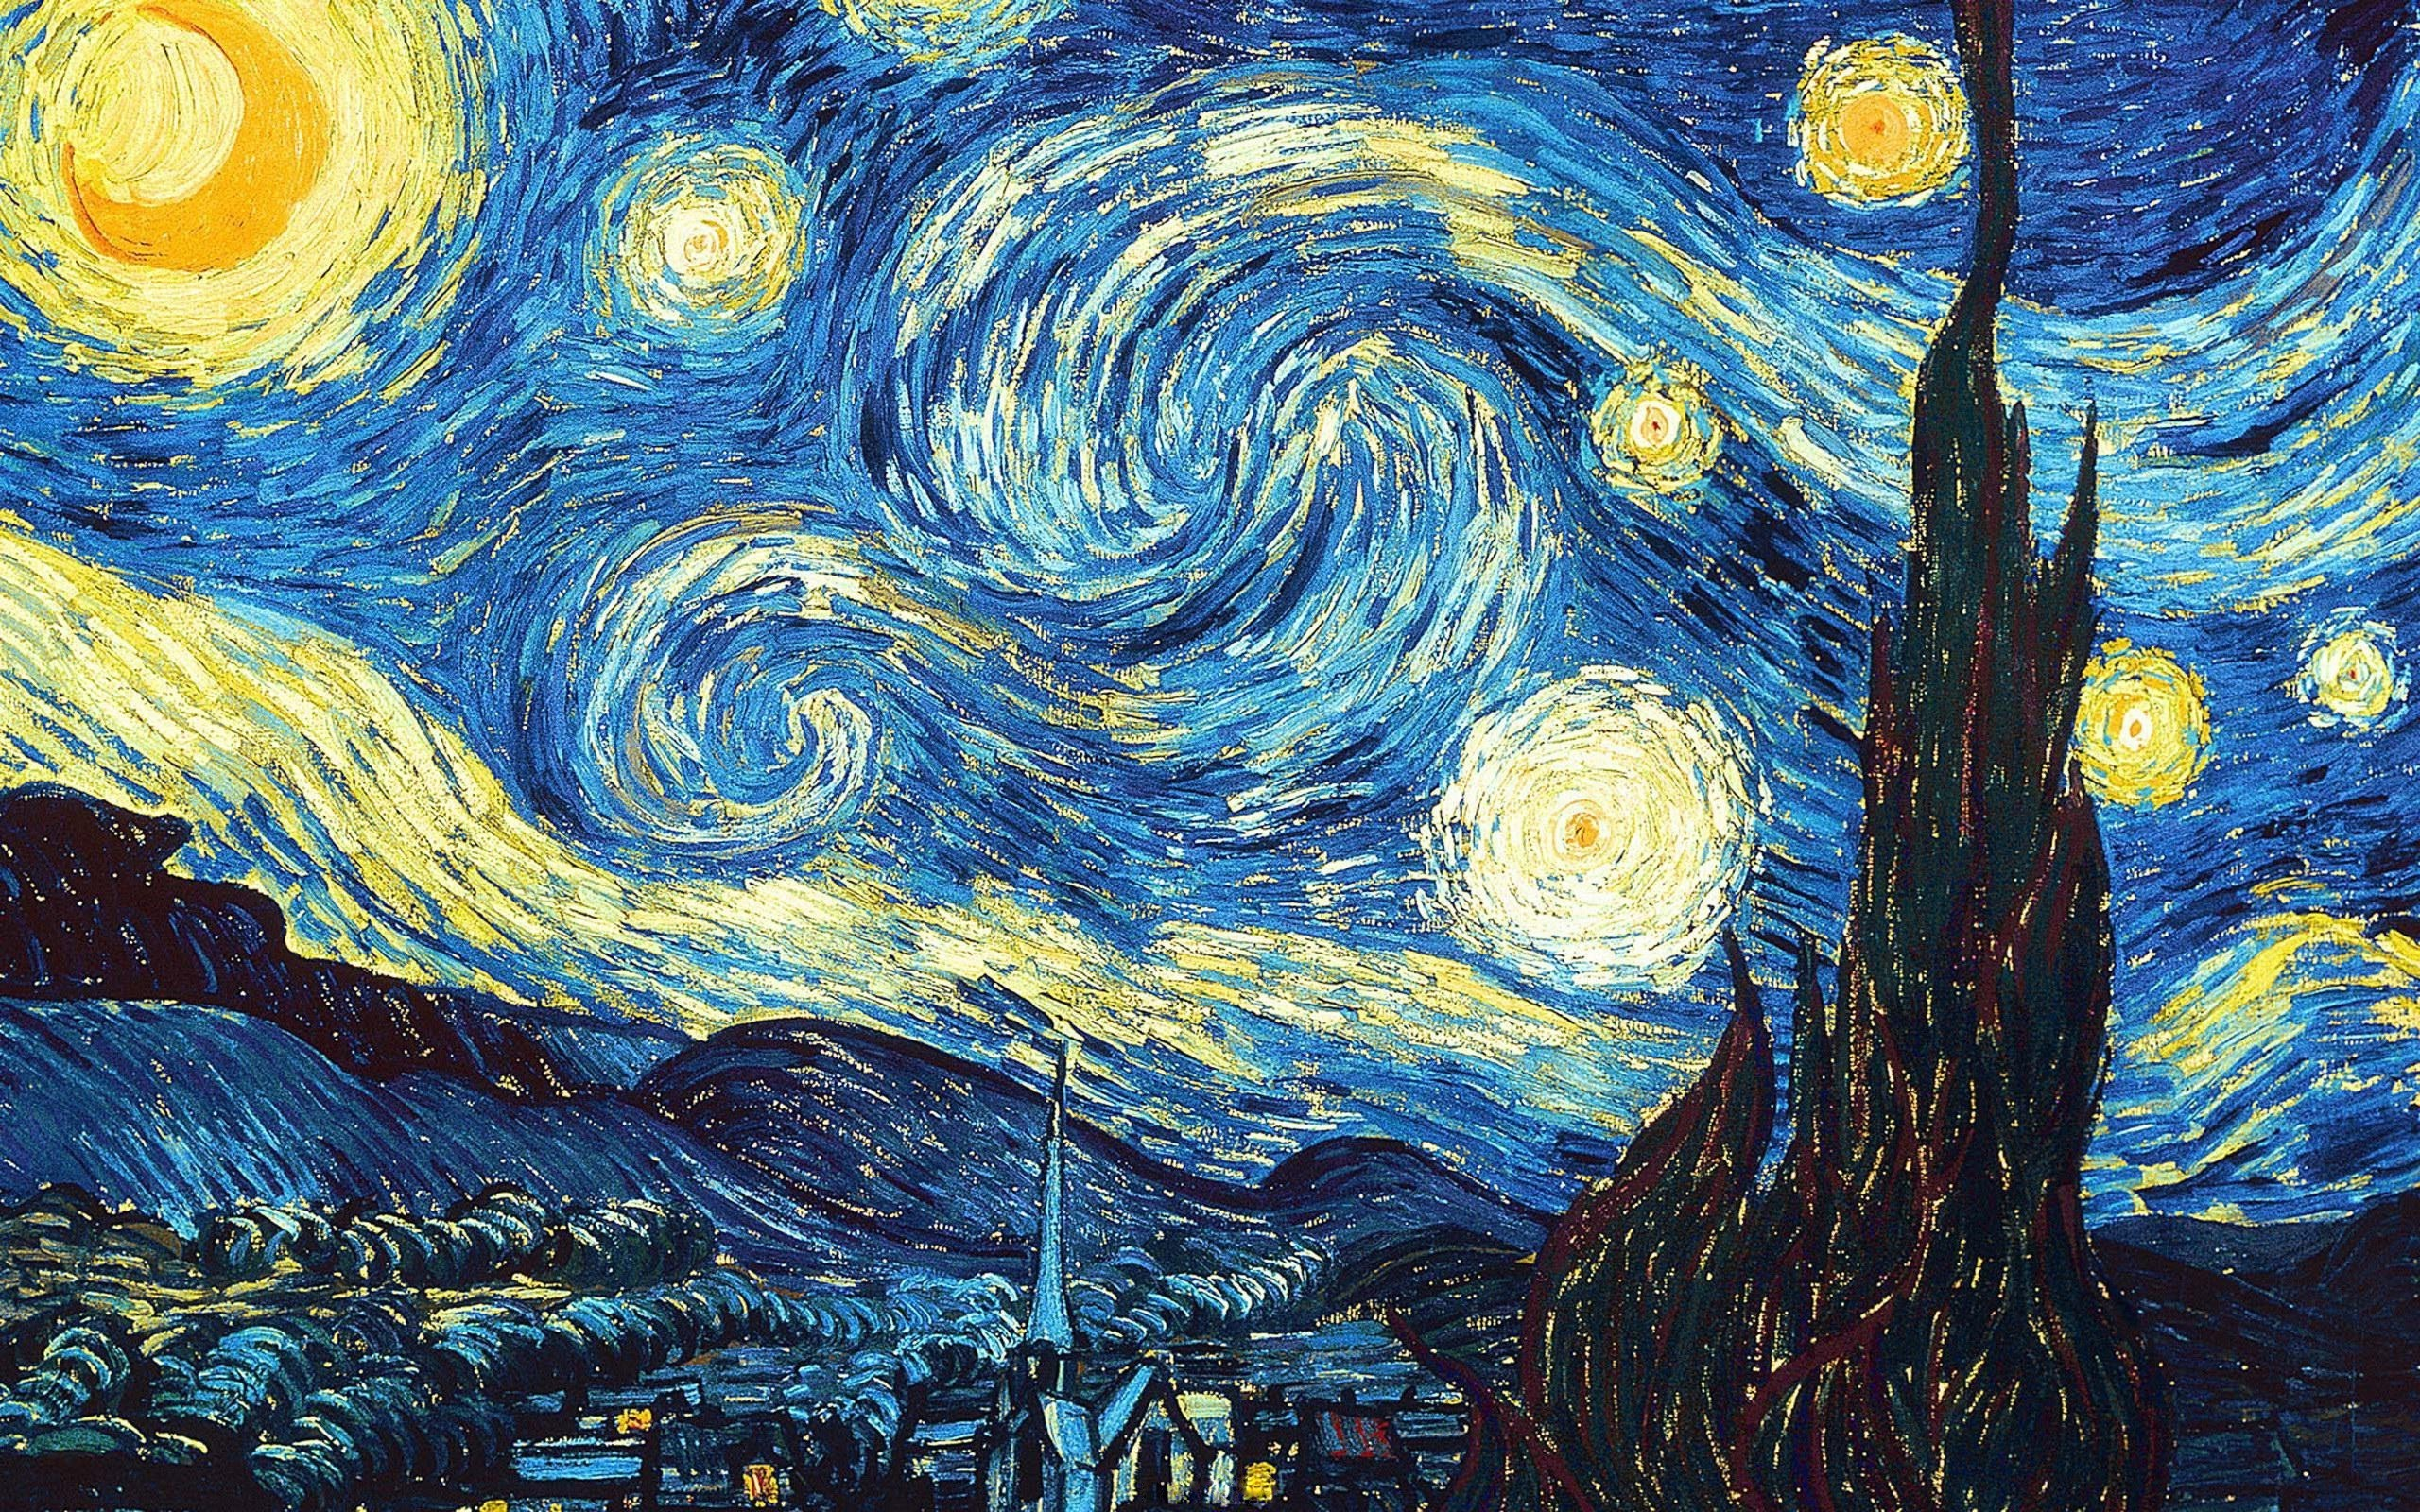 2560x1600  Van Gogh Starry Night Desktop Wallpaper | Van Gogh Gallery